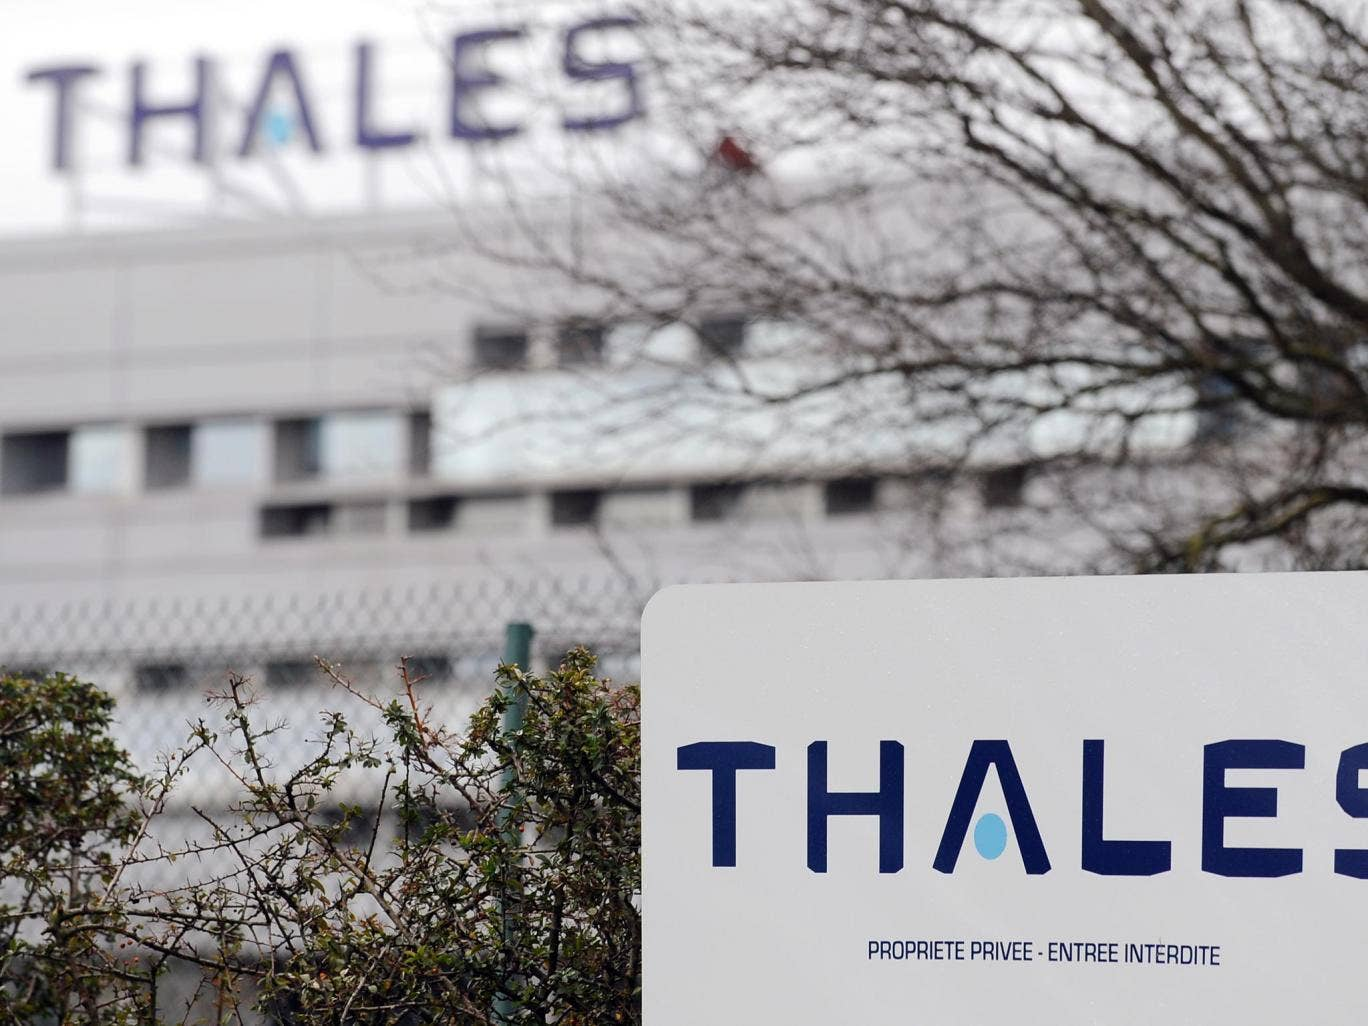 The Campaign Against the Arms Trade staged action to highlight what it claims is an inappropriate commercial relationship with Thales